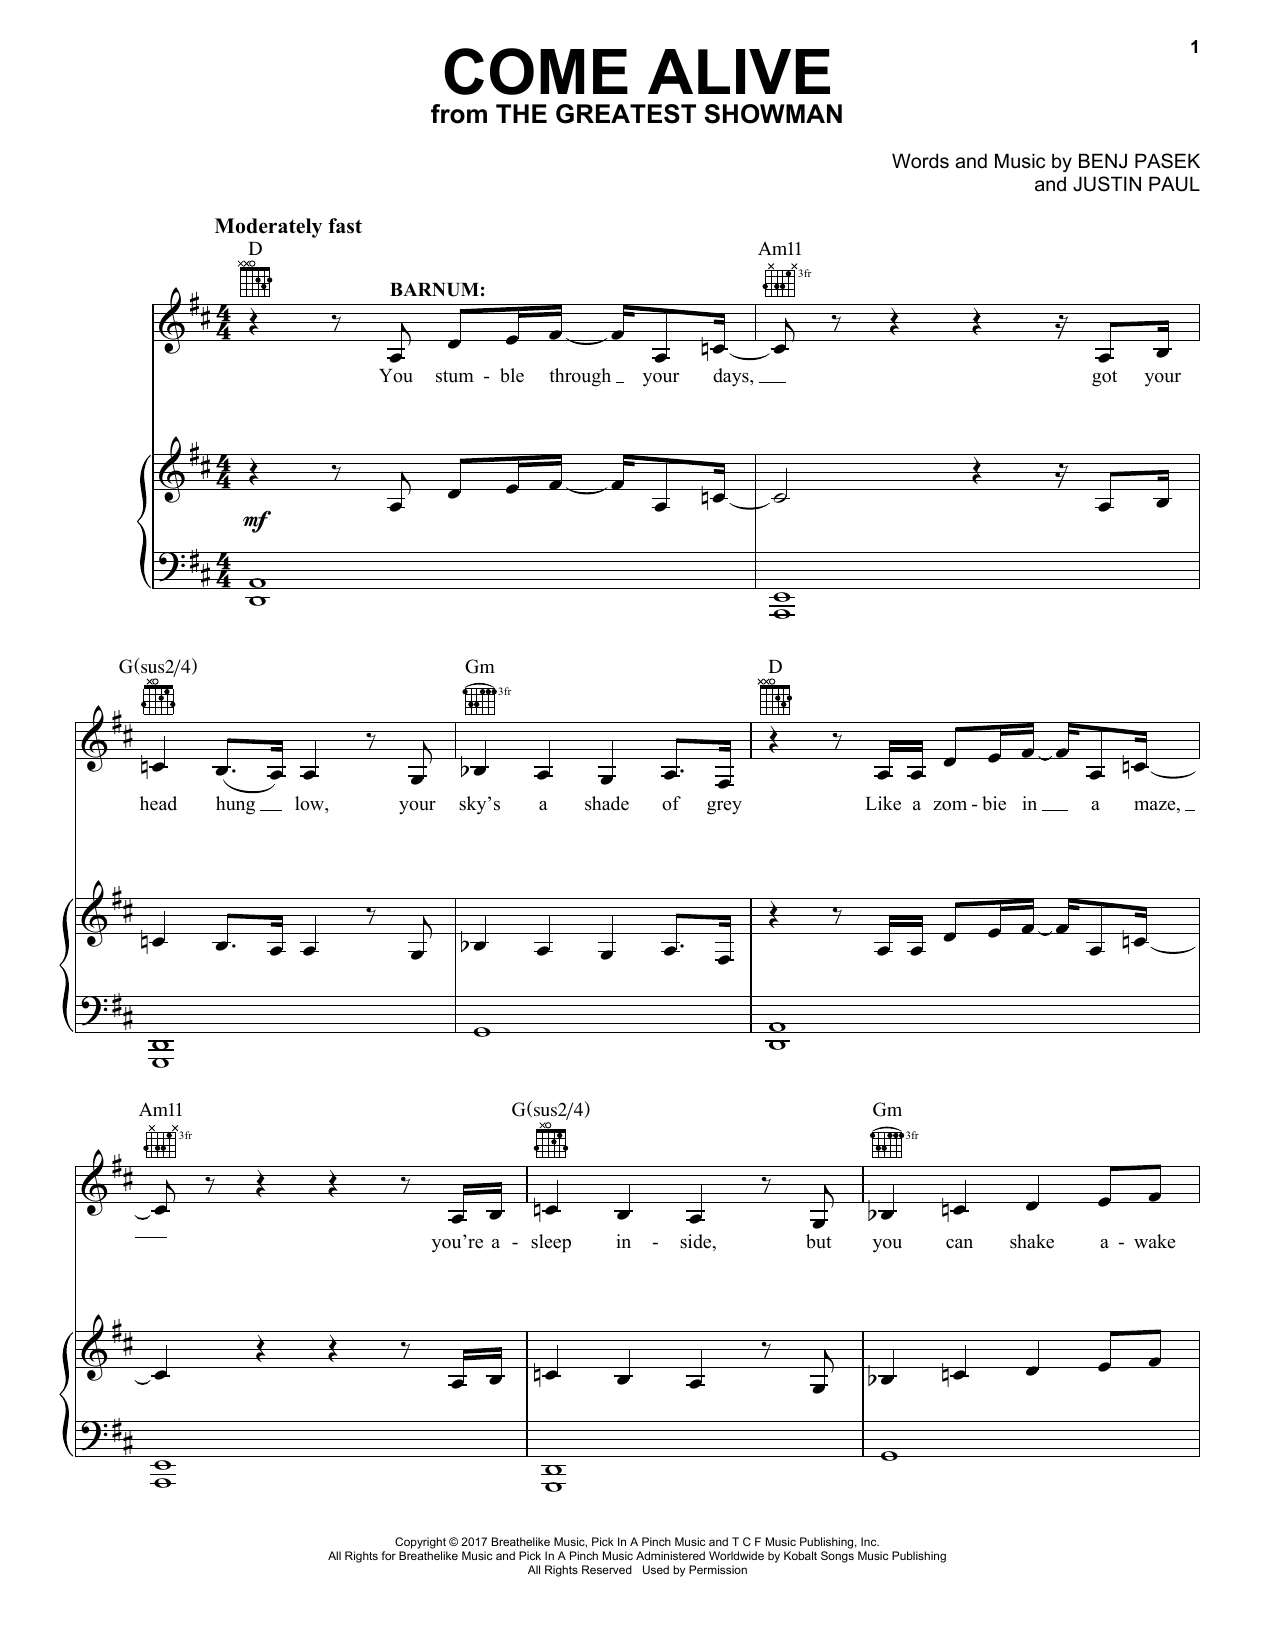 Pasek & Paul Come Alive (from The Greatest Showman) sheet music notes and chords. Download Printable PDF.